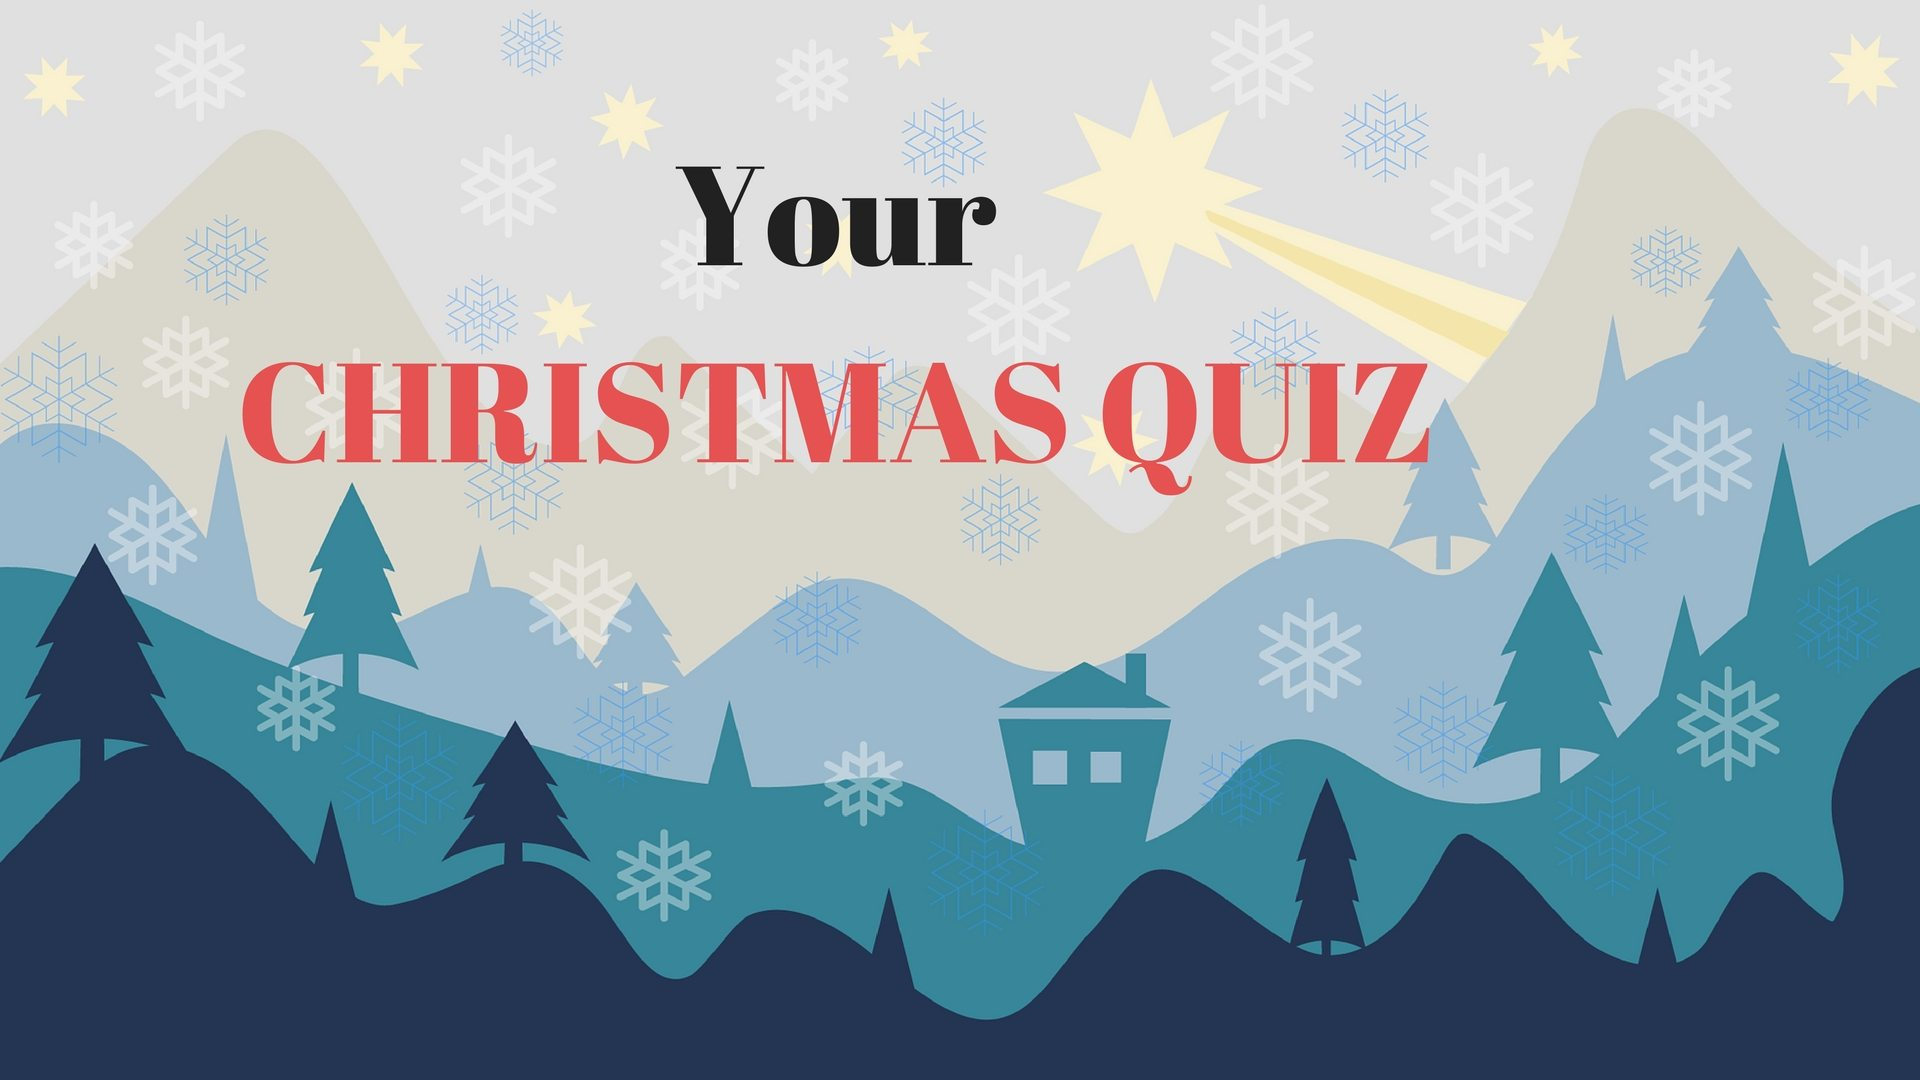 Your CHRISTMAS QUIZ - Pixabay - Canva